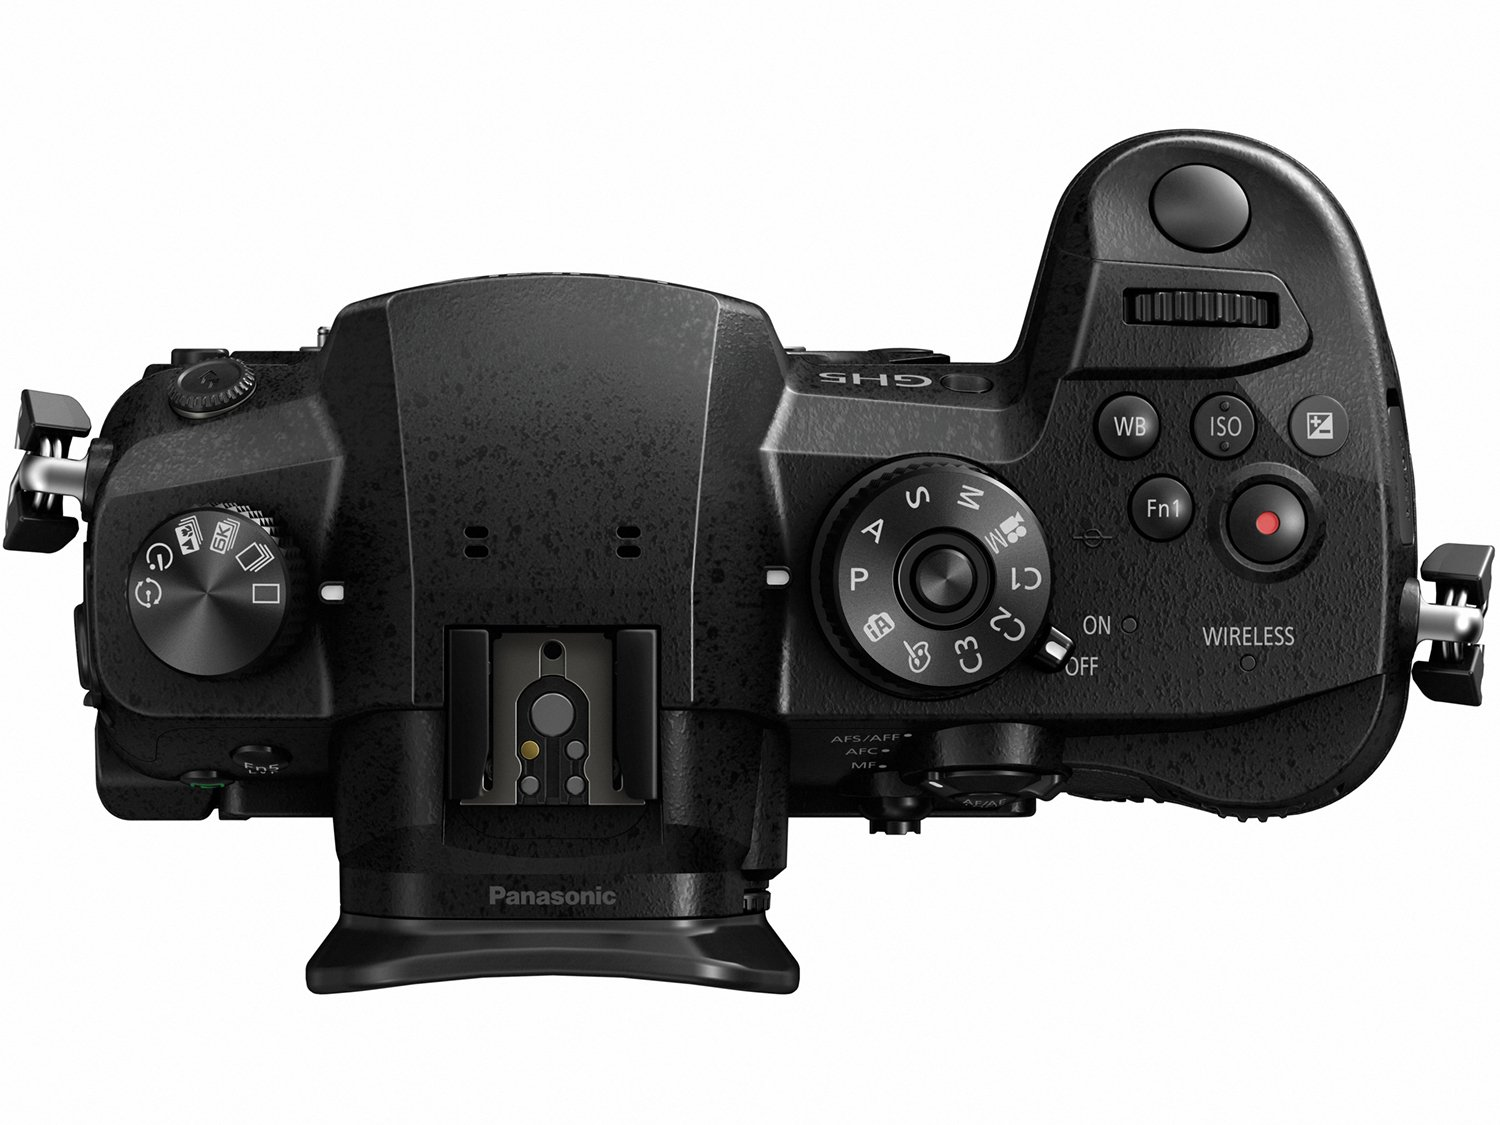 Sony a7R III vs Panasonic GH5 Comparison